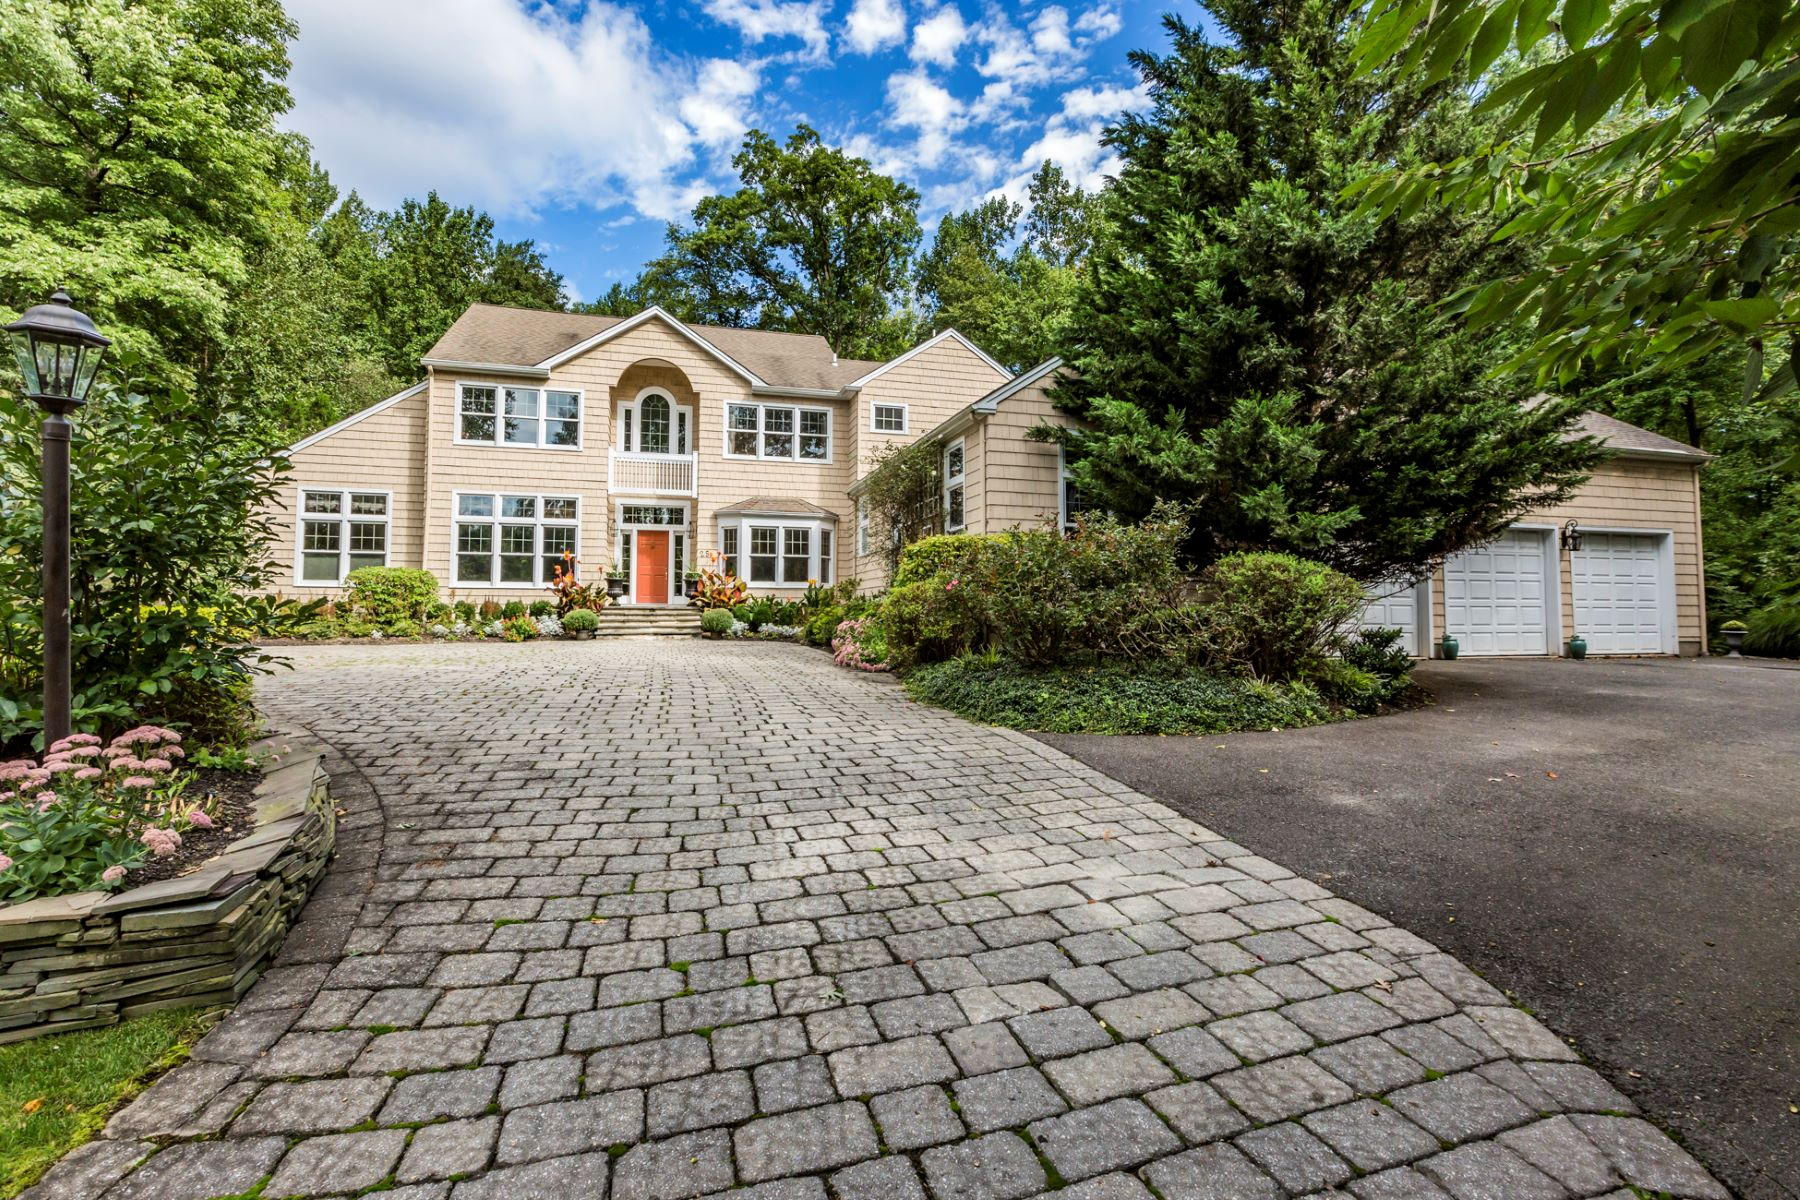 Single Family Home for Sale at The Feeling of the Hamptons - in Princeton! 25 Foulet Drive, Princeton, New Jersey 08540 United States